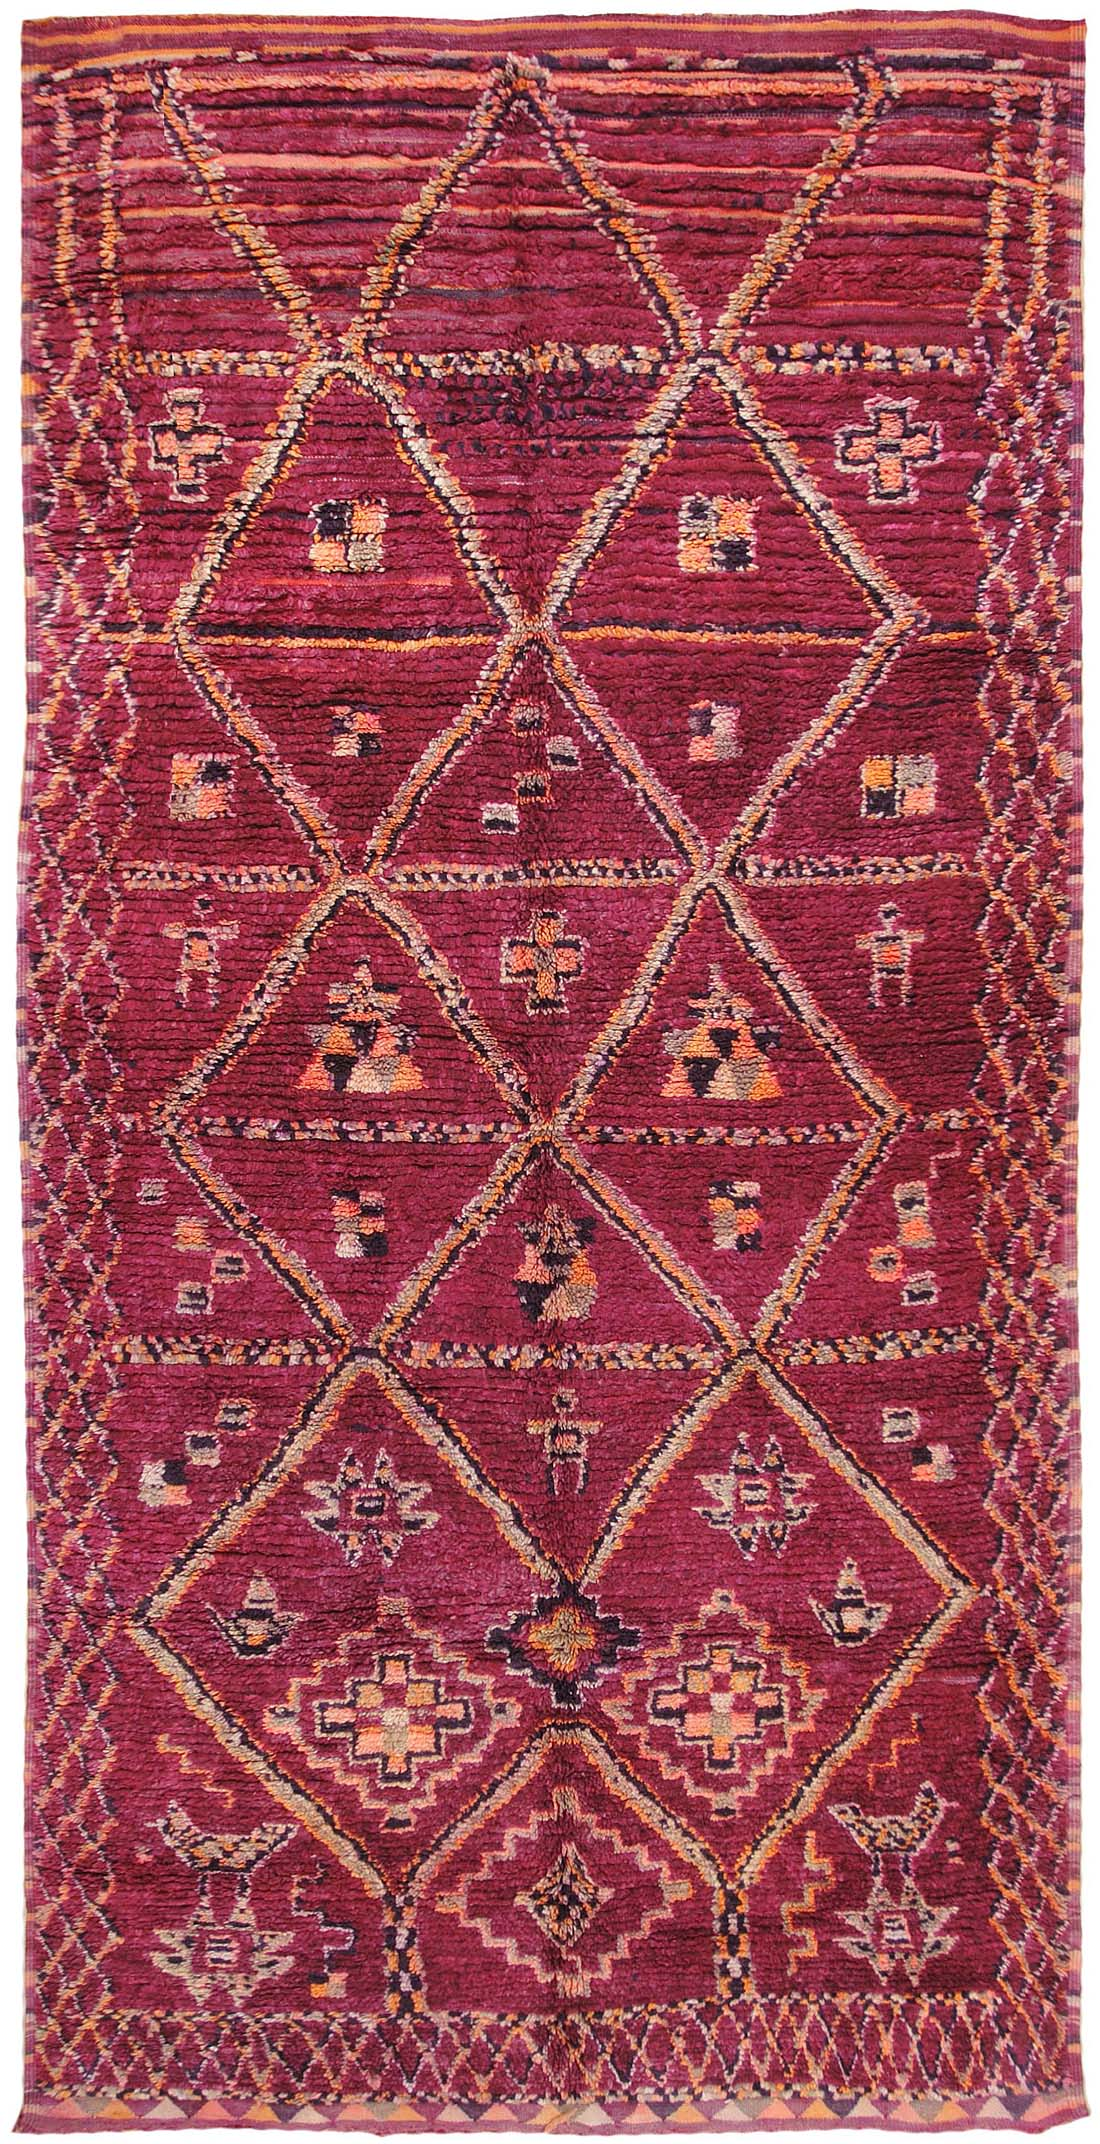 Rugs Online Sale Vintage Moroccan Oriental Rugs 44464 For Sale Antiques